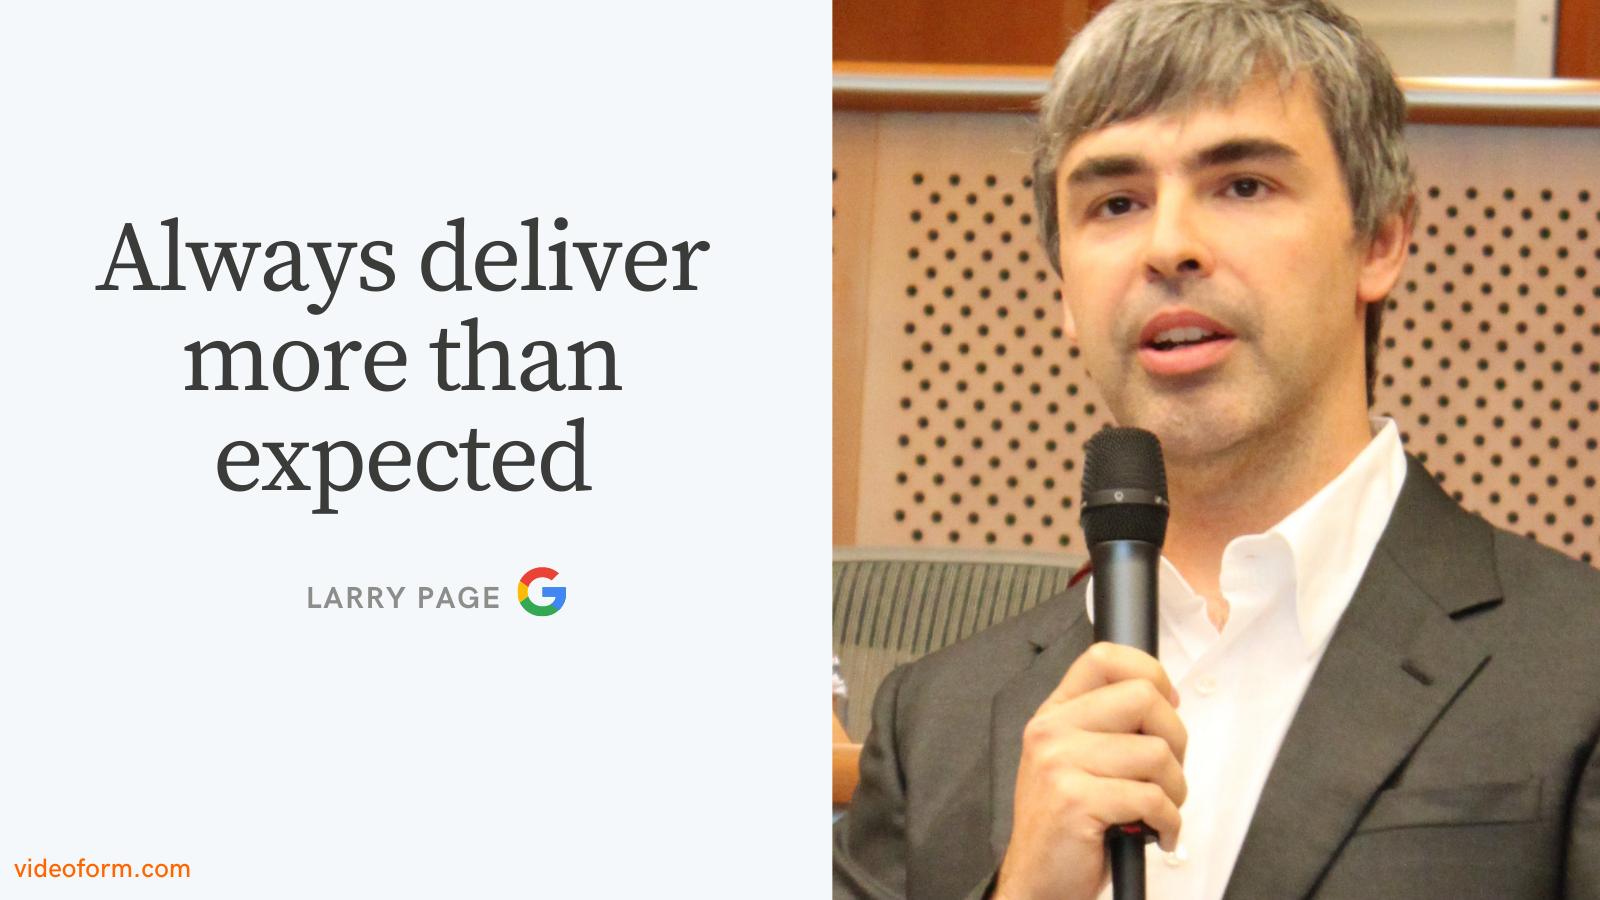 Larry page motivation quote